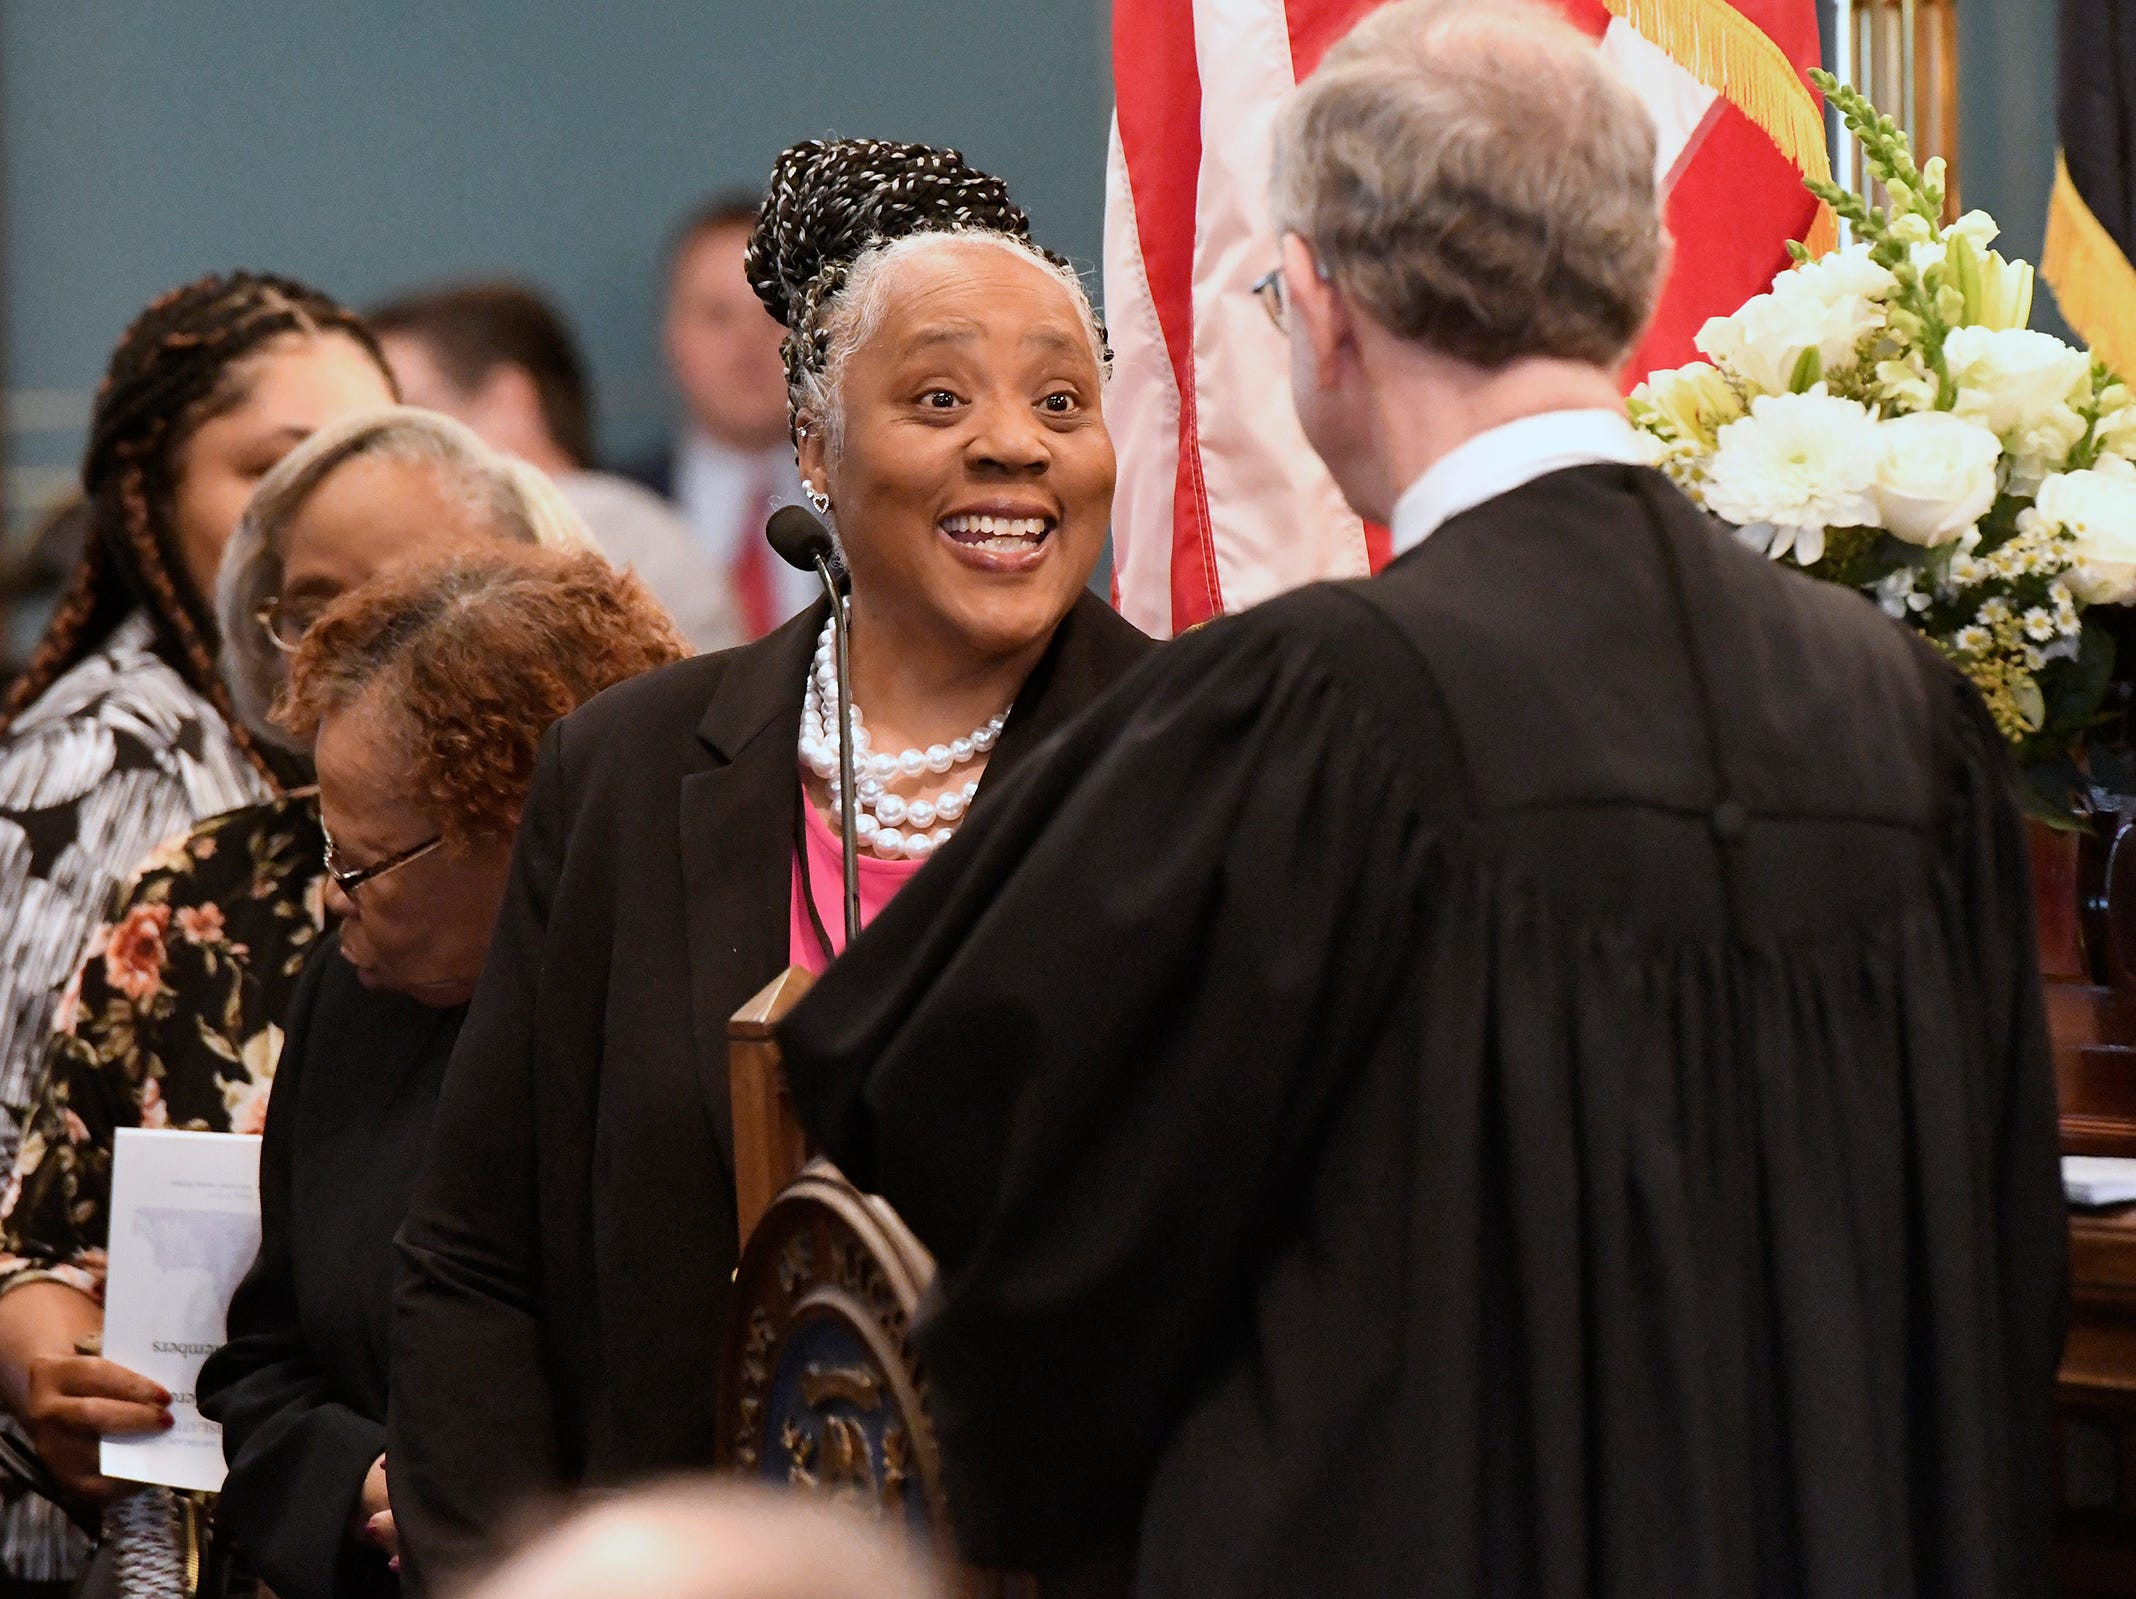 New State Sen. Betty Jean Alexander laughs with Chief Justice Stephen Markman before swearing in ceremonies.